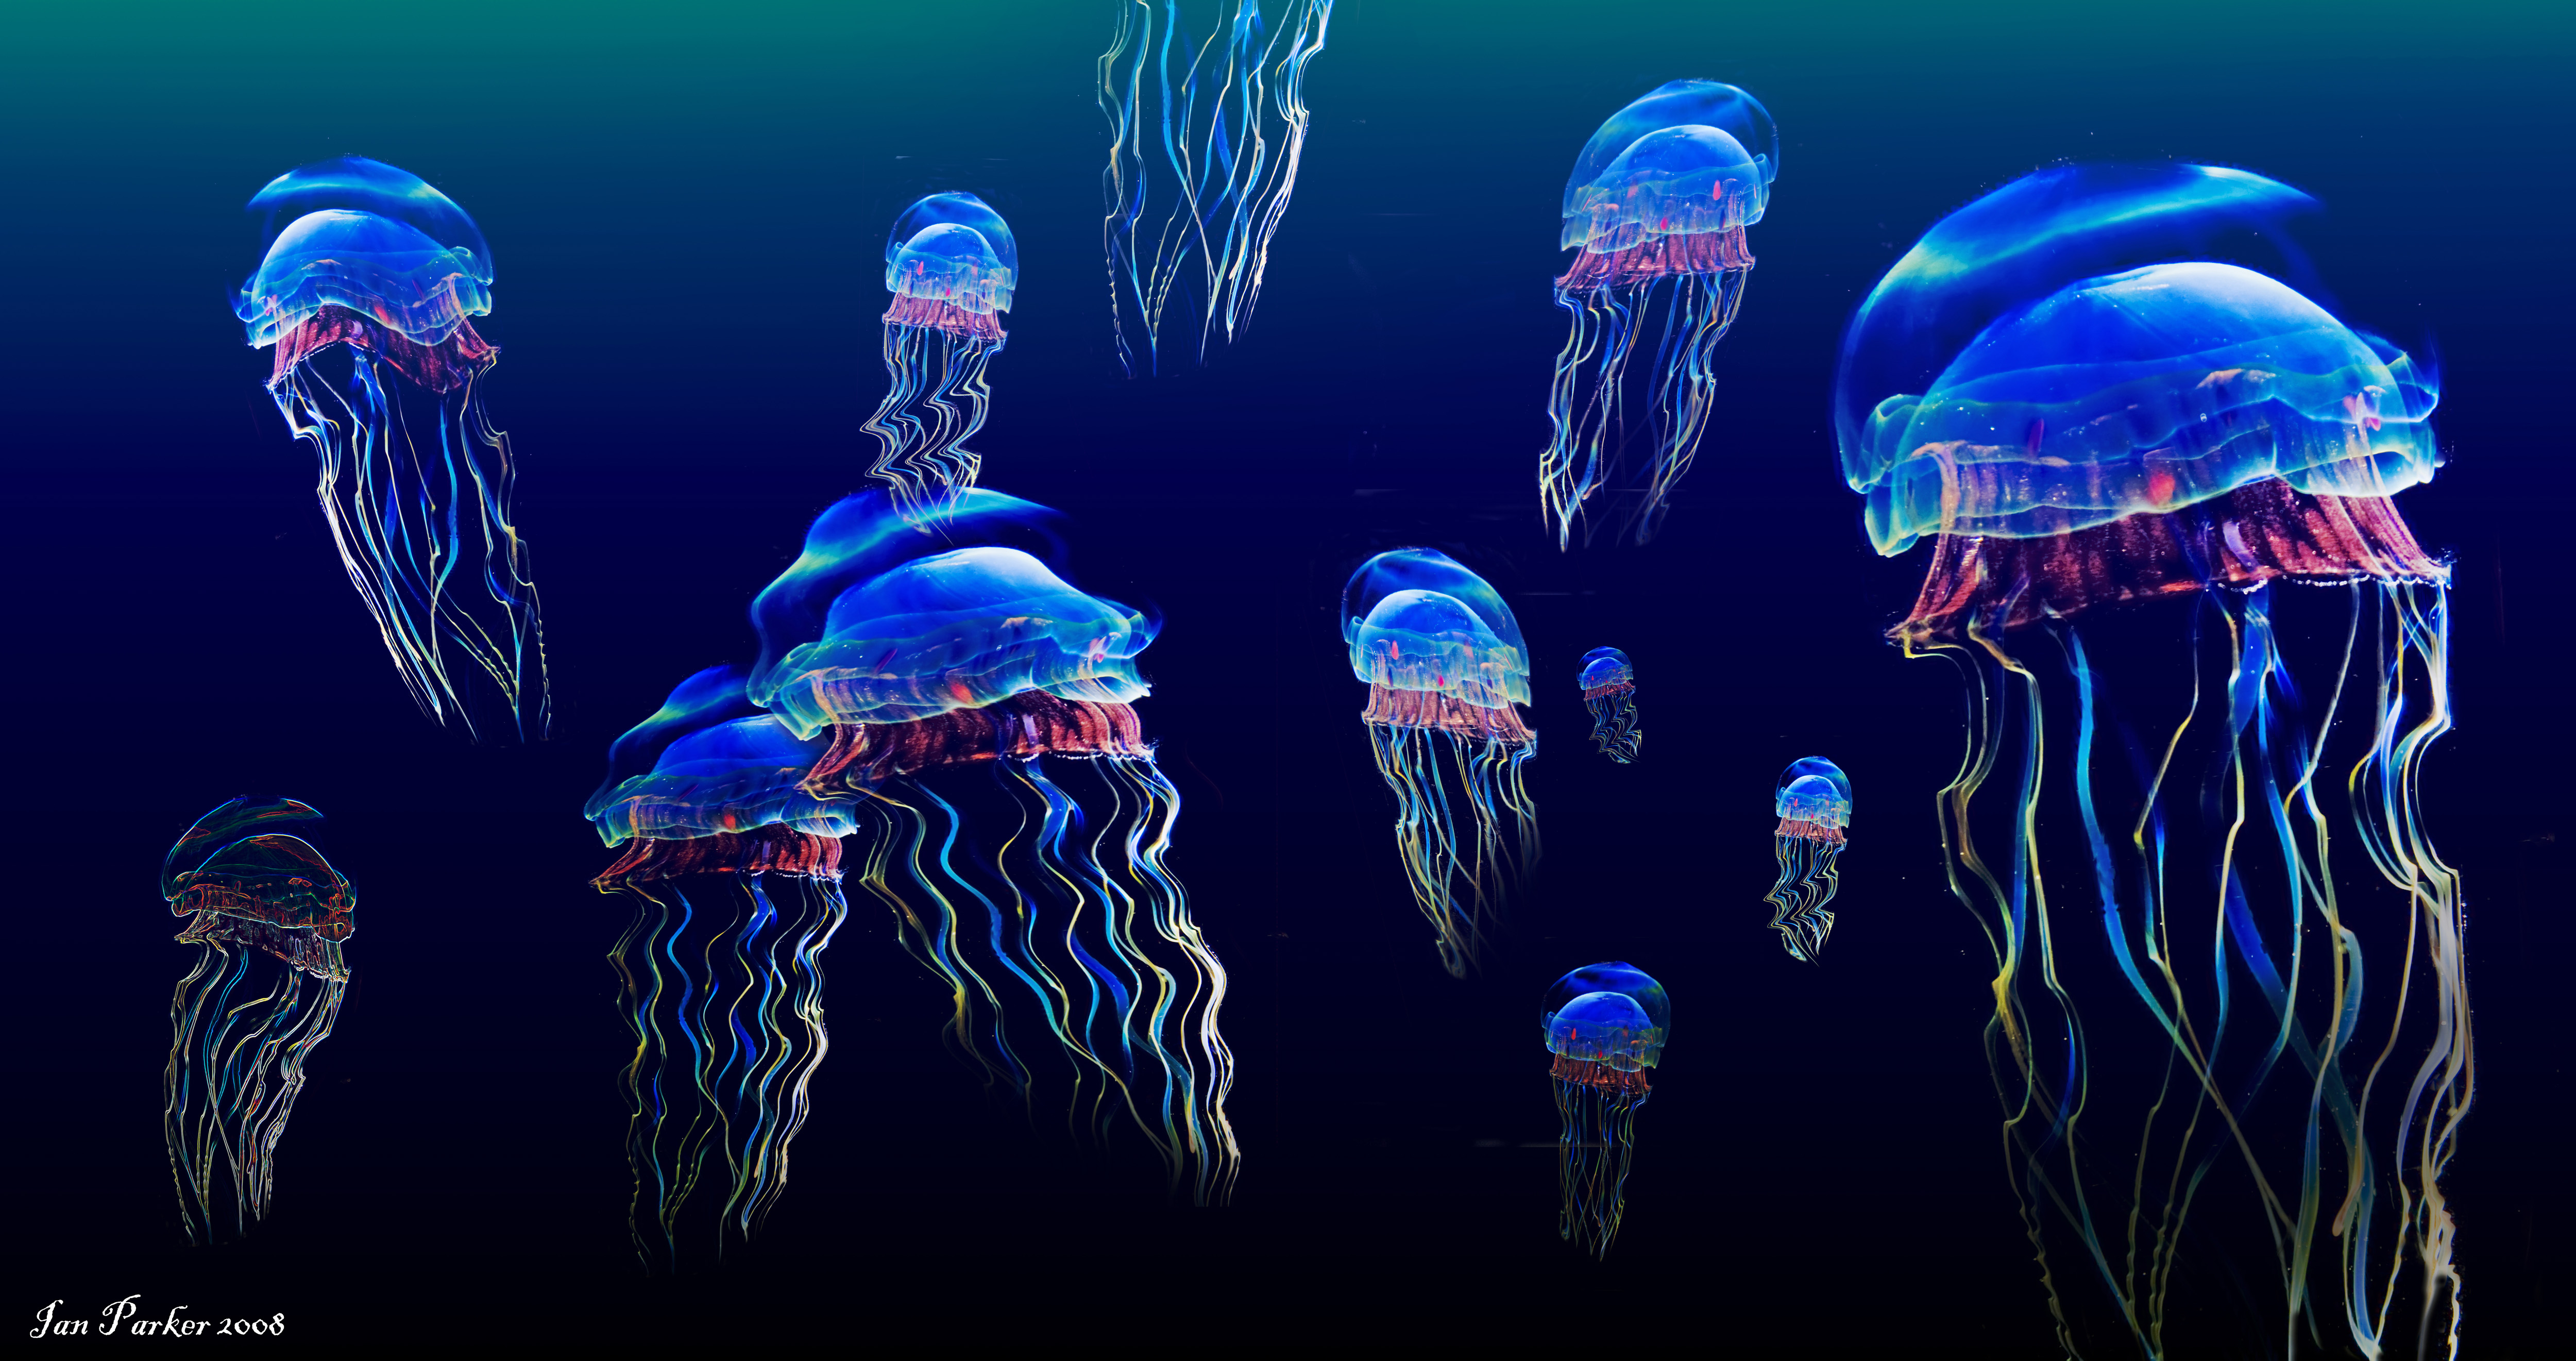 Jellyfish 4k Ultra HD Wallpaper | Background Image | 5000x2641 | ID:292393 - Wallpaper Abyss